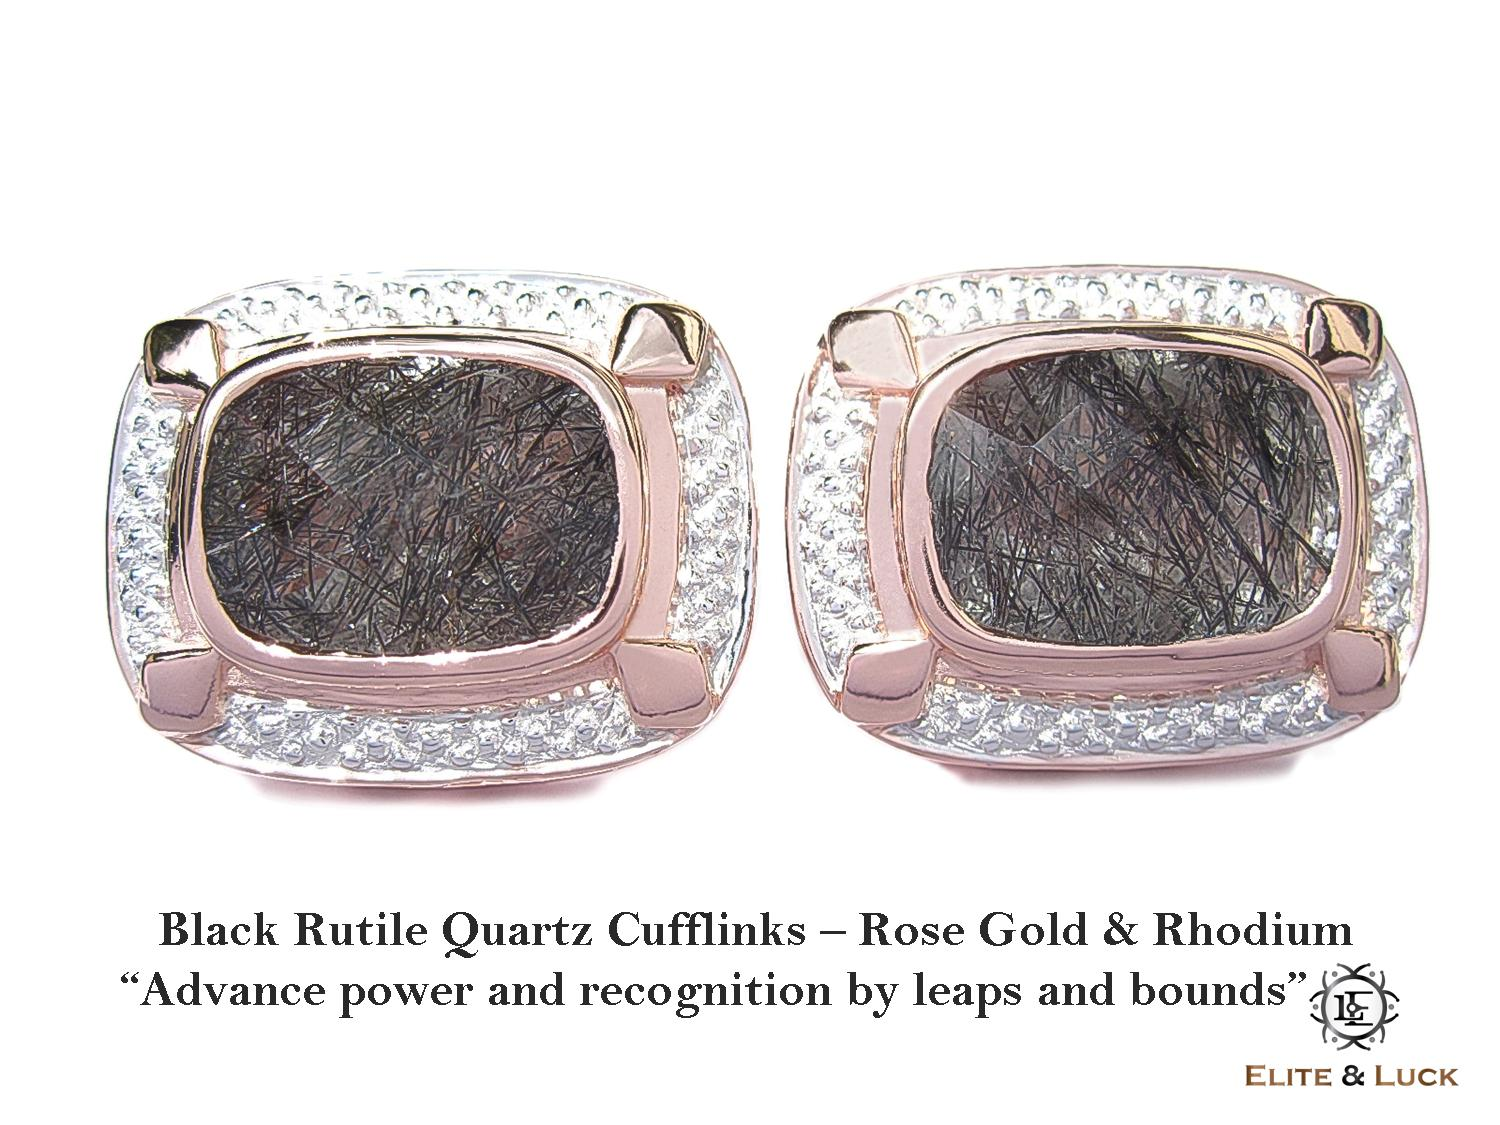 Black Rutile Quartz Sterling Silver Cufflinks สี Rose Gold & Rhodium รุ่น Luxury